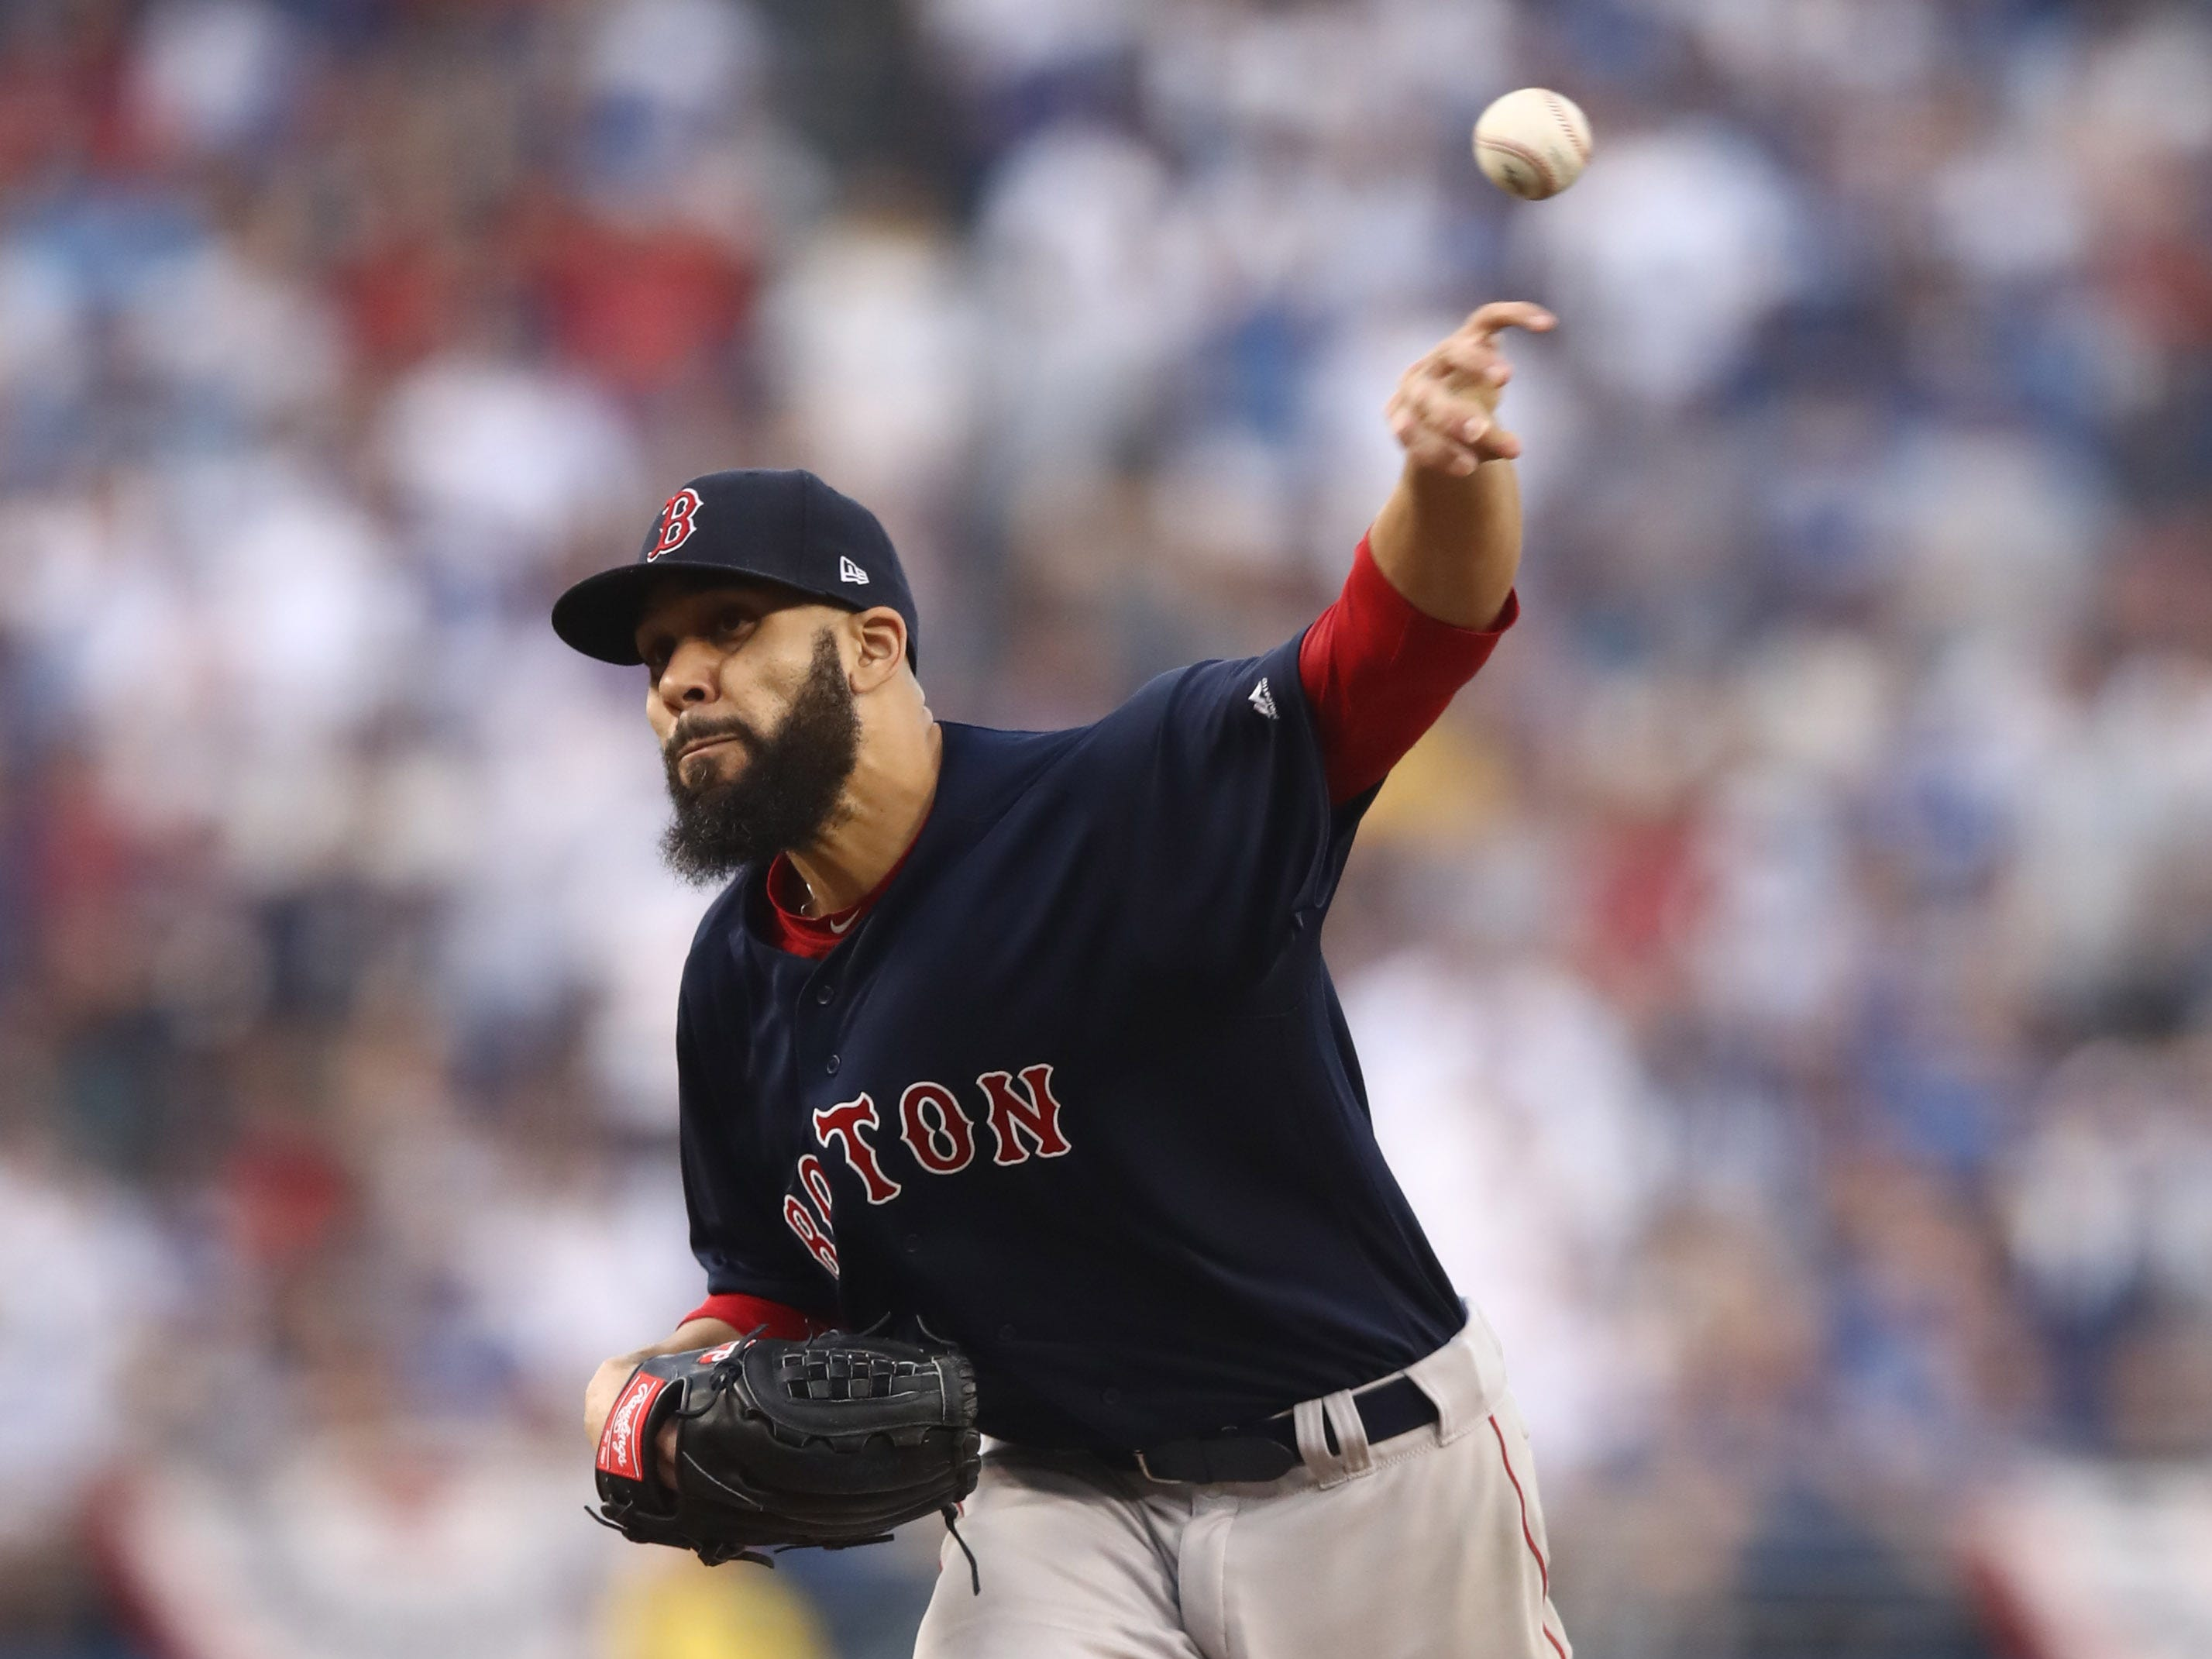 Game 5 at Dodger Stadium: David Price throws a pitch in the first inning.